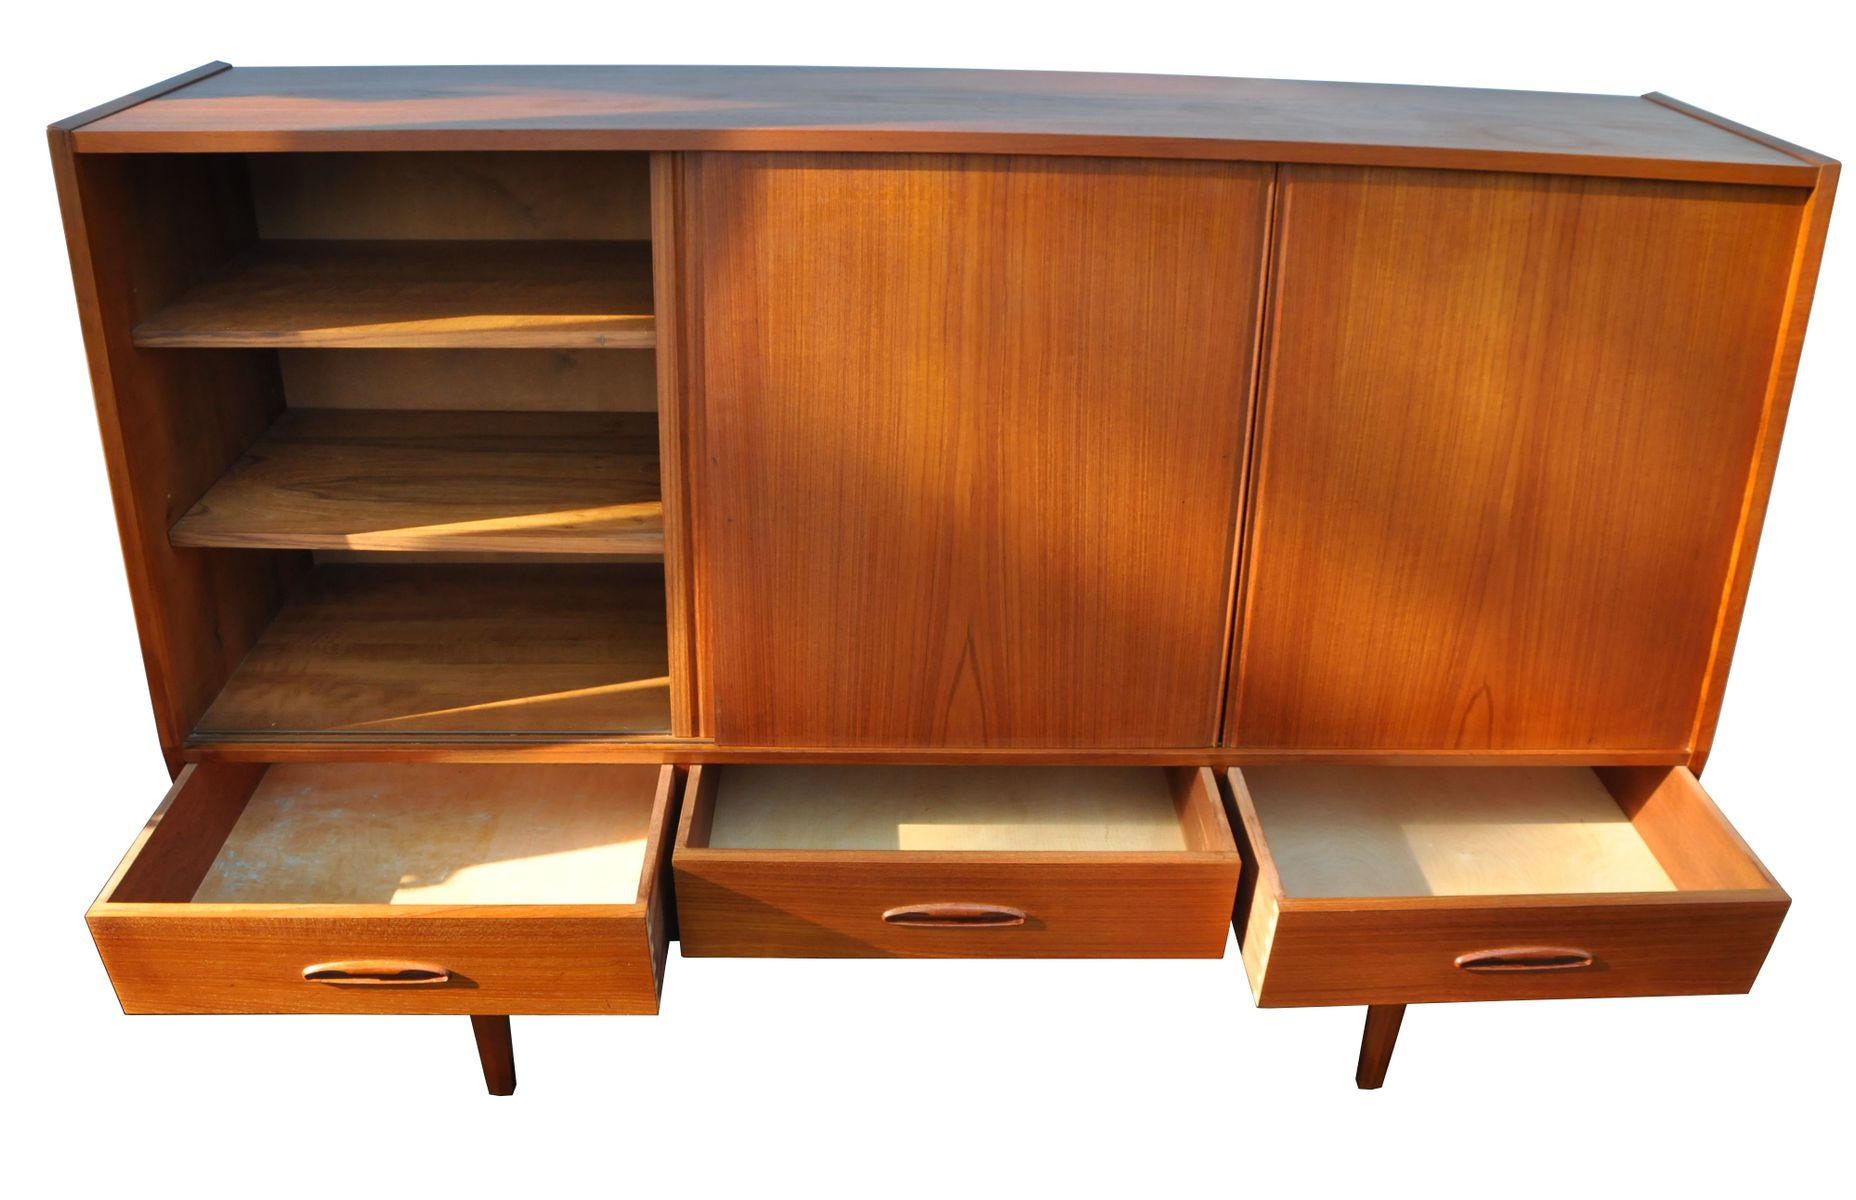 d nisches teak highboard mit schiebet ren 1960er bei pamono kaufen. Black Bedroom Furniture Sets. Home Design Ideas